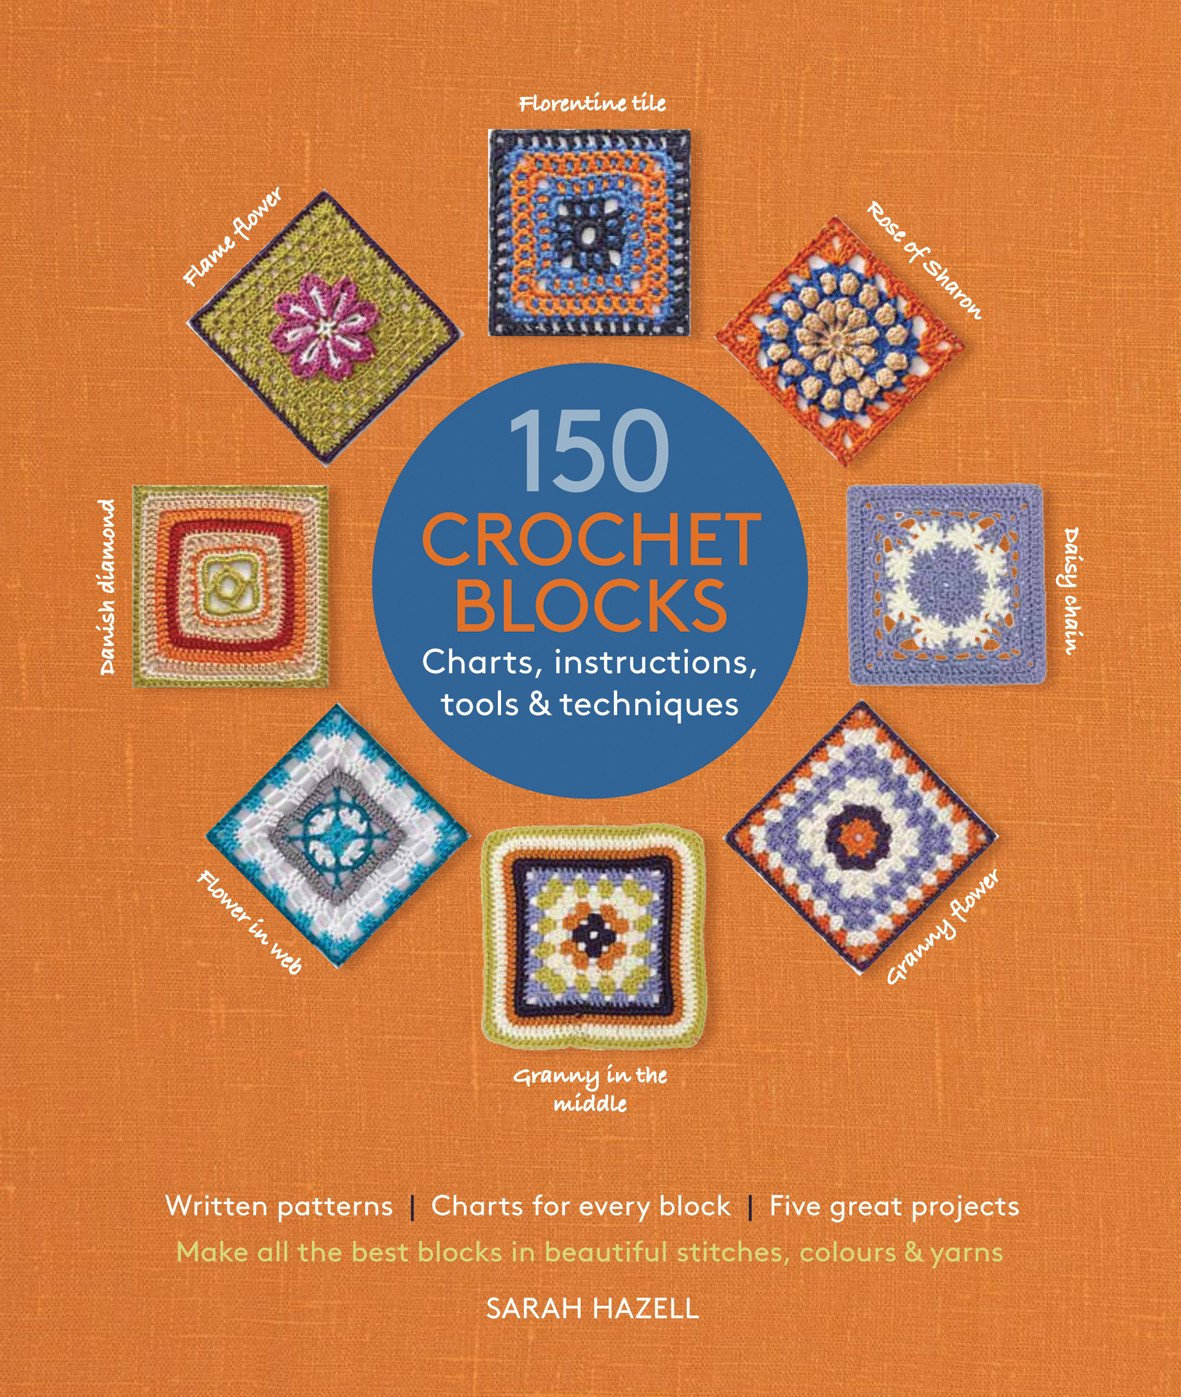 Image of 150 Crochet Blocks